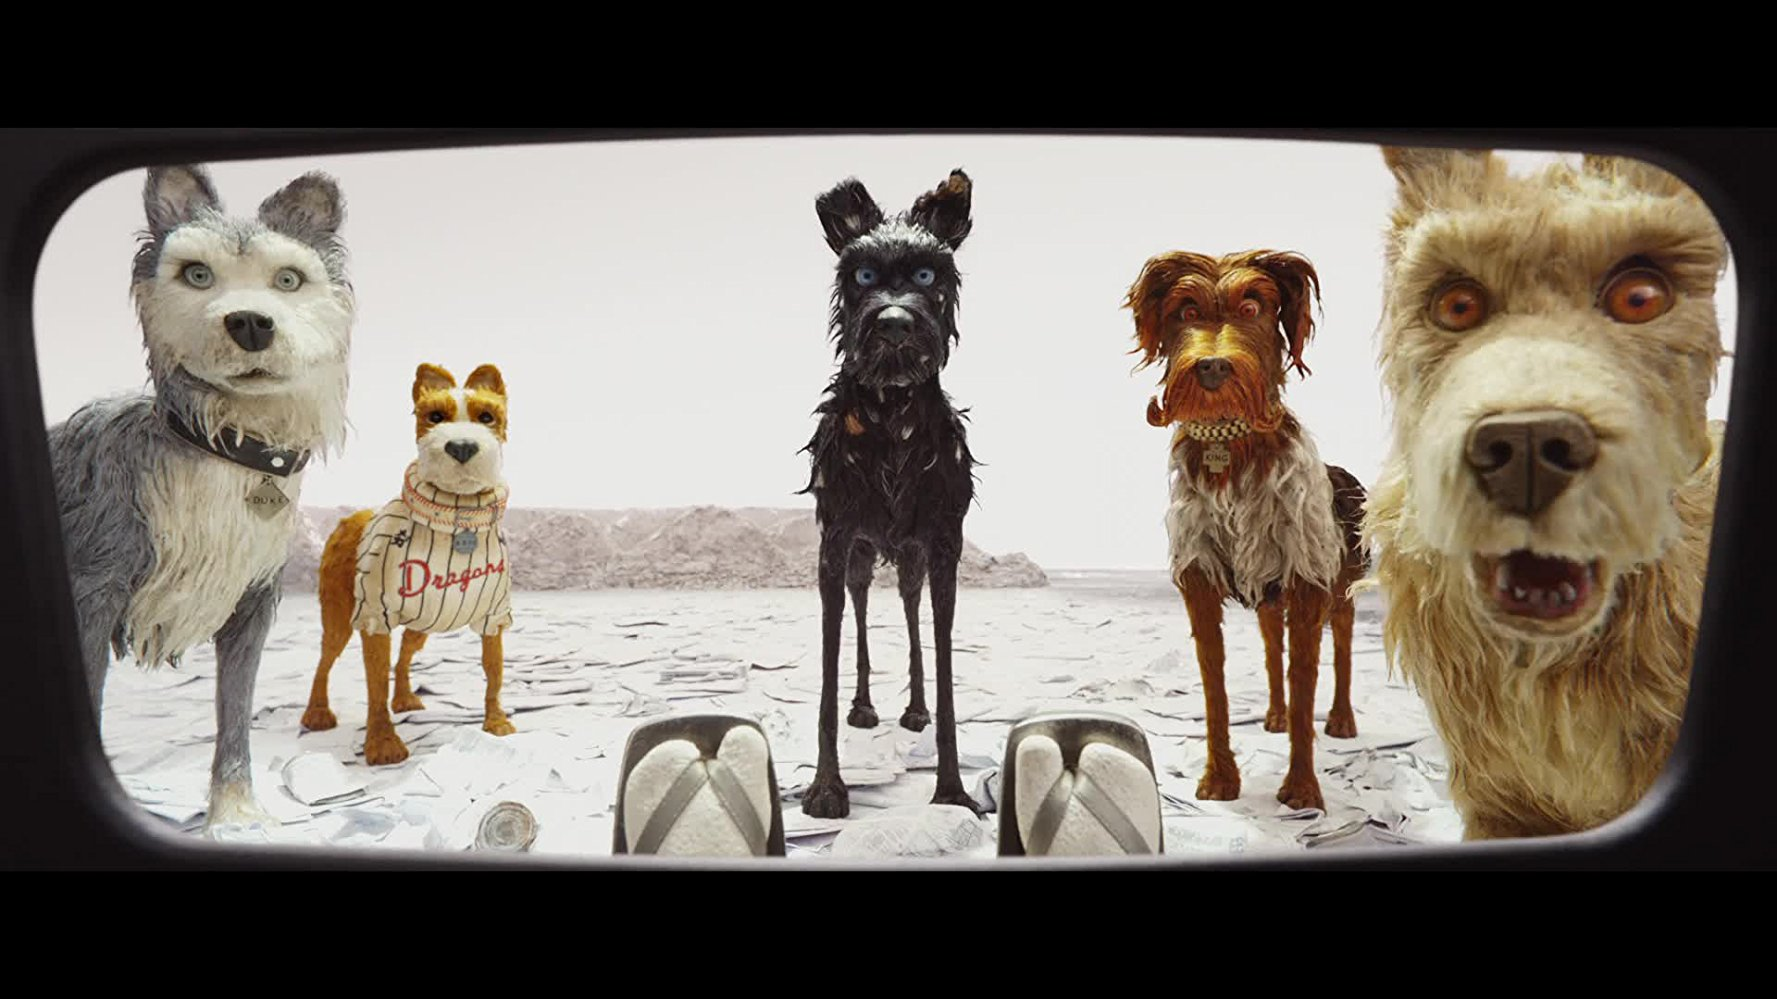 Isle of Dogs, Wes Anderson